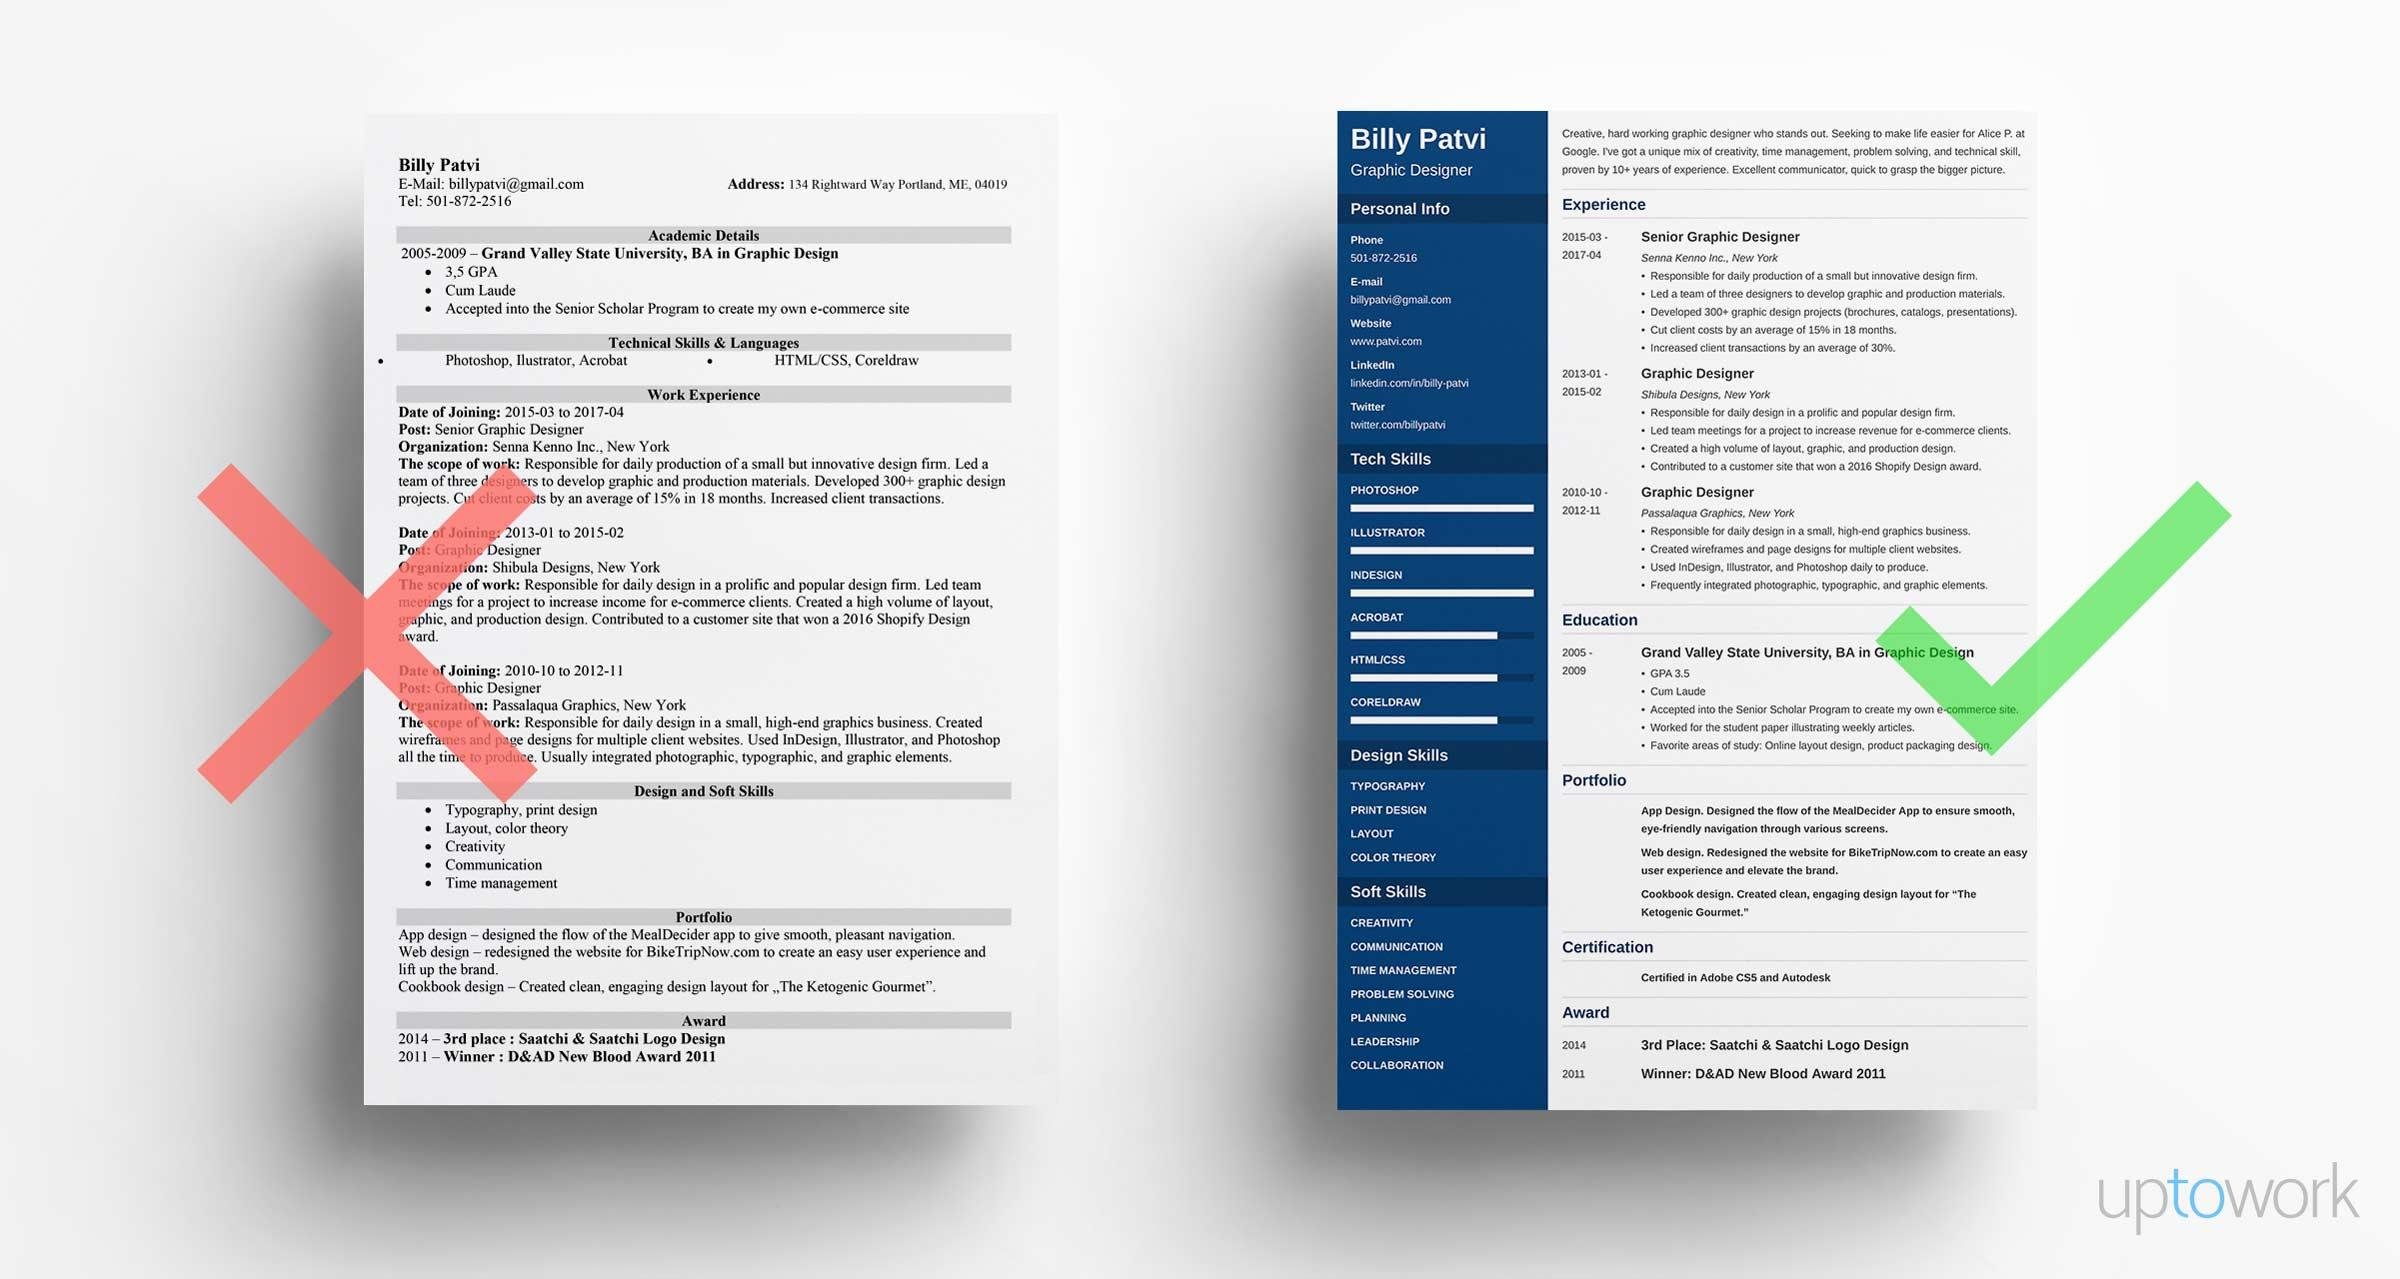 graphic designer resume examples and design tips for creative samples free military Resume Creative Resume Design For Graphic Designer